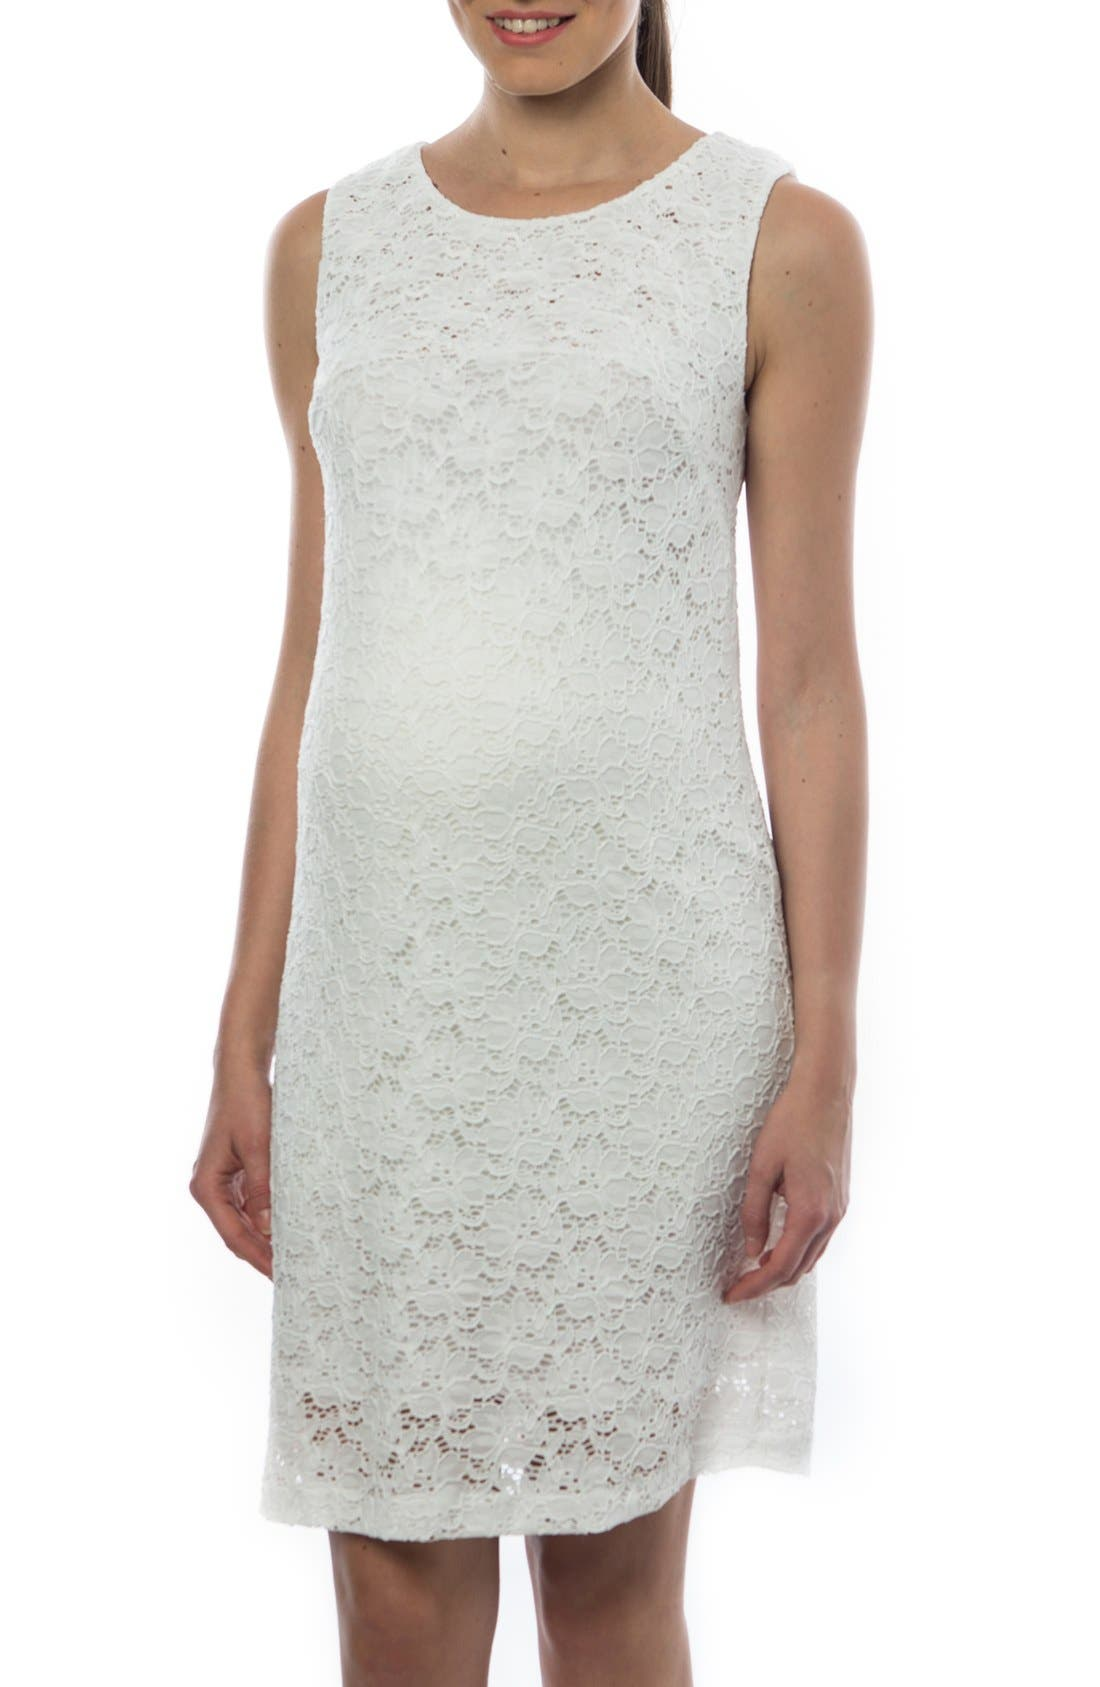 PIETRO BRUNELLI 'Danubio' Lace Maternity Shift Dress